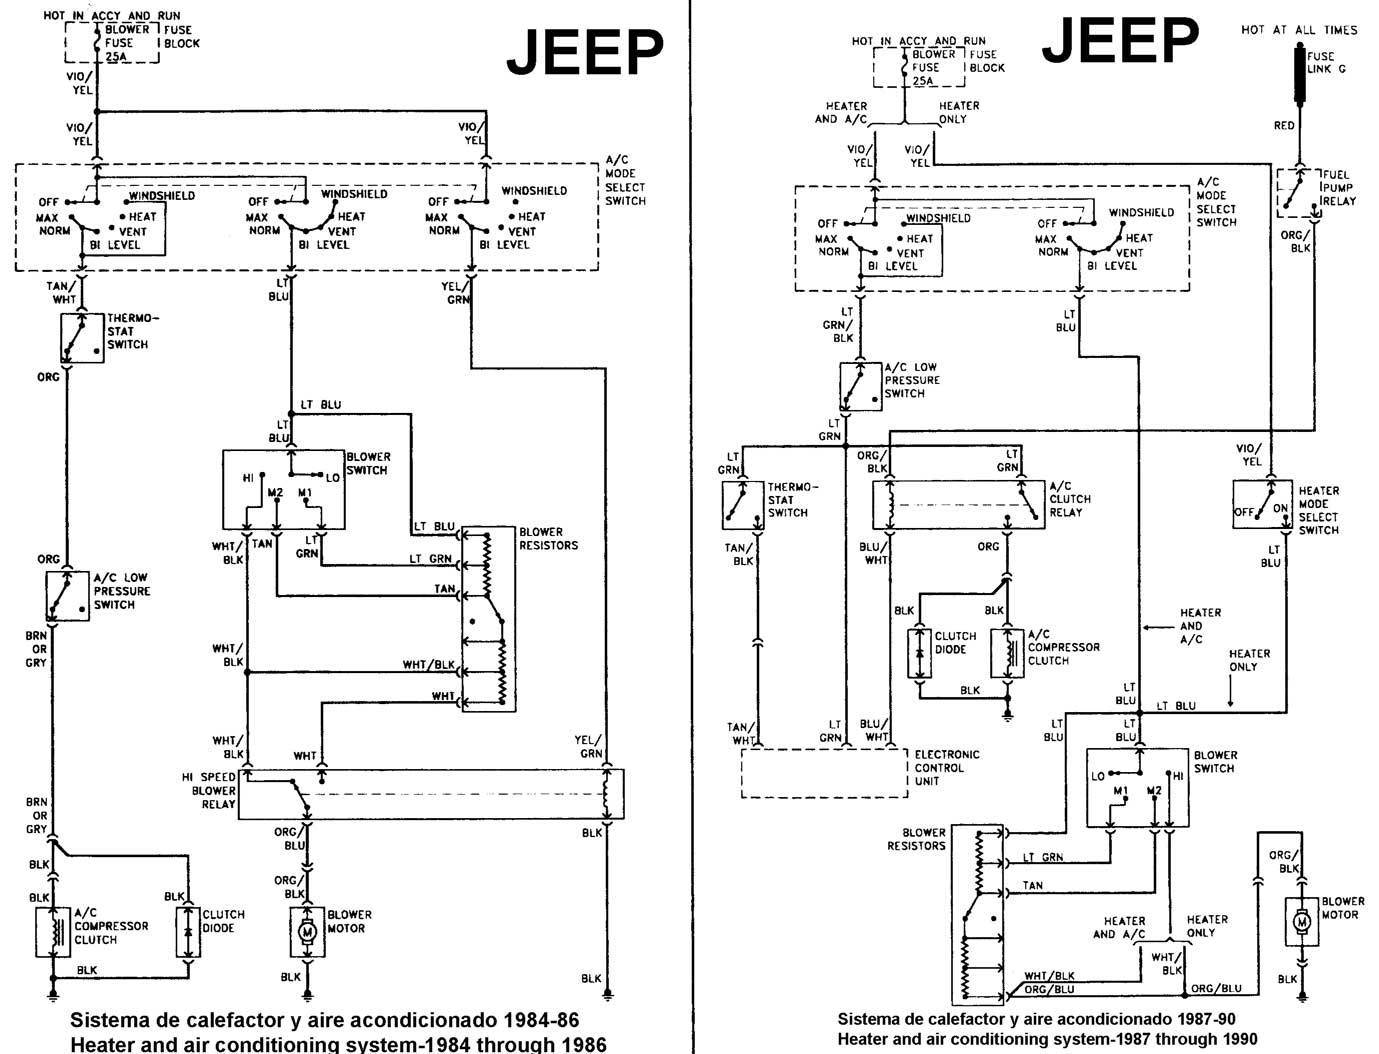 Wiring Diagram Jeep Liberty Sport Jeep Auto Wiring